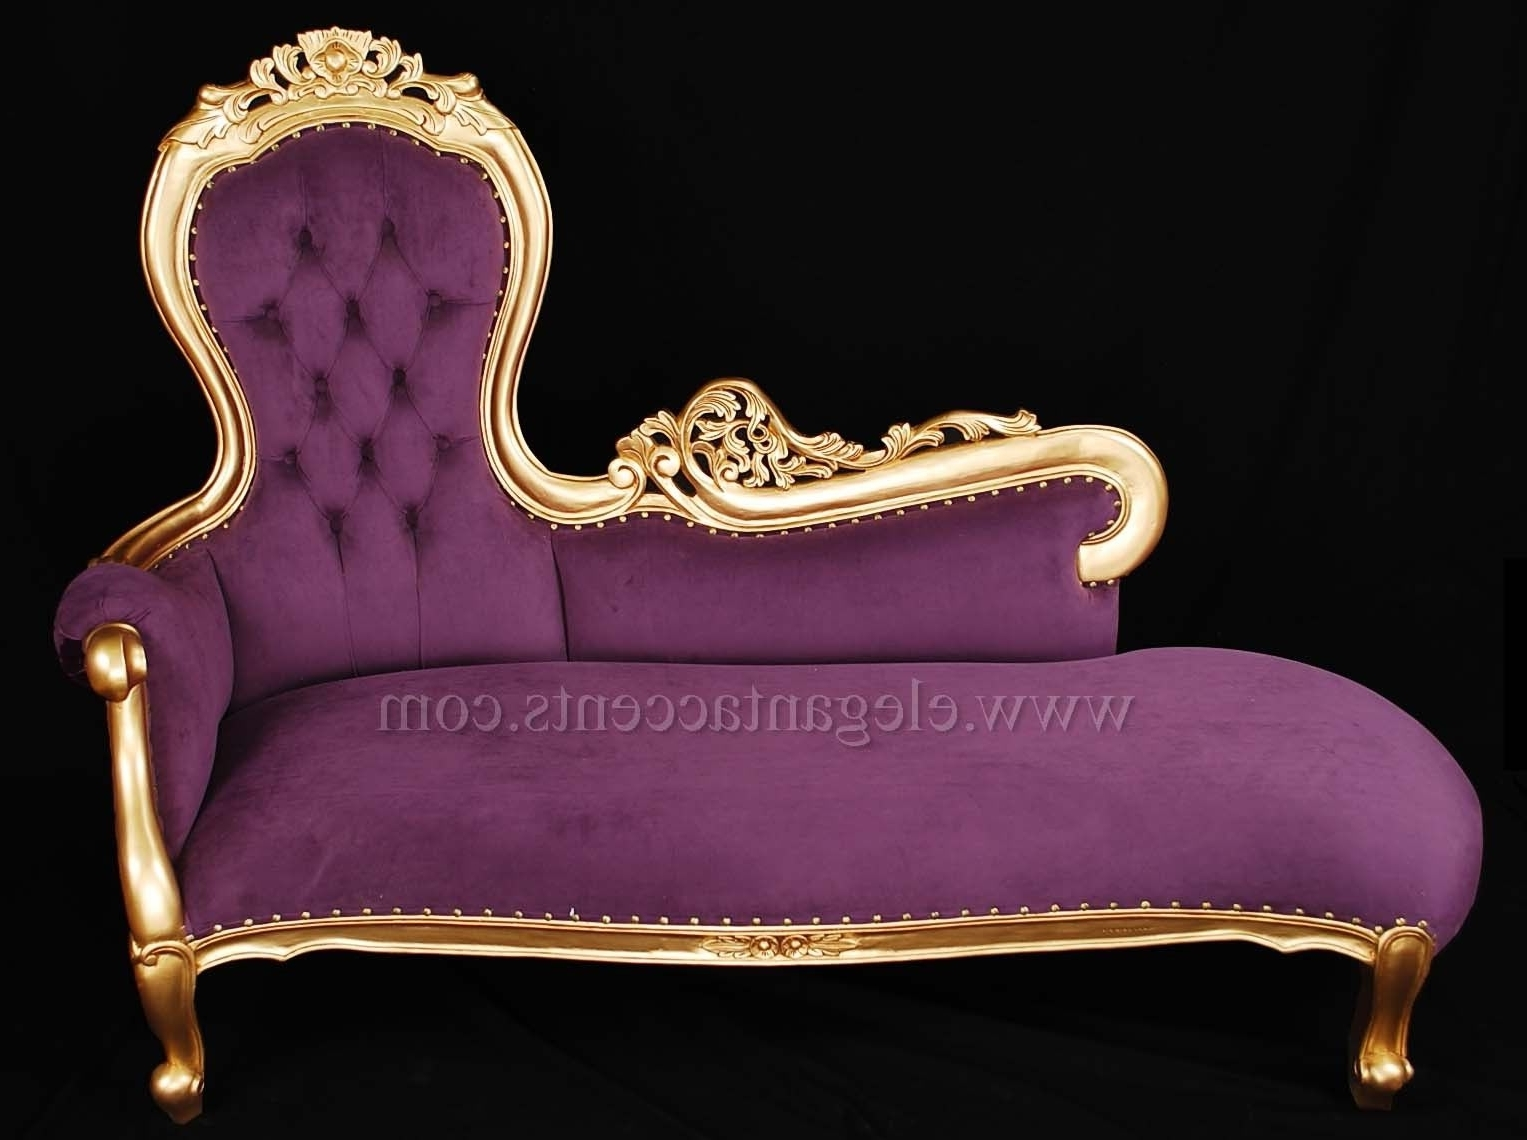 French Rose Sofa Chaise Lounge – Gold Finish With Purple Fabric Within Well Liked Purple Chaises (View 6 of 15)